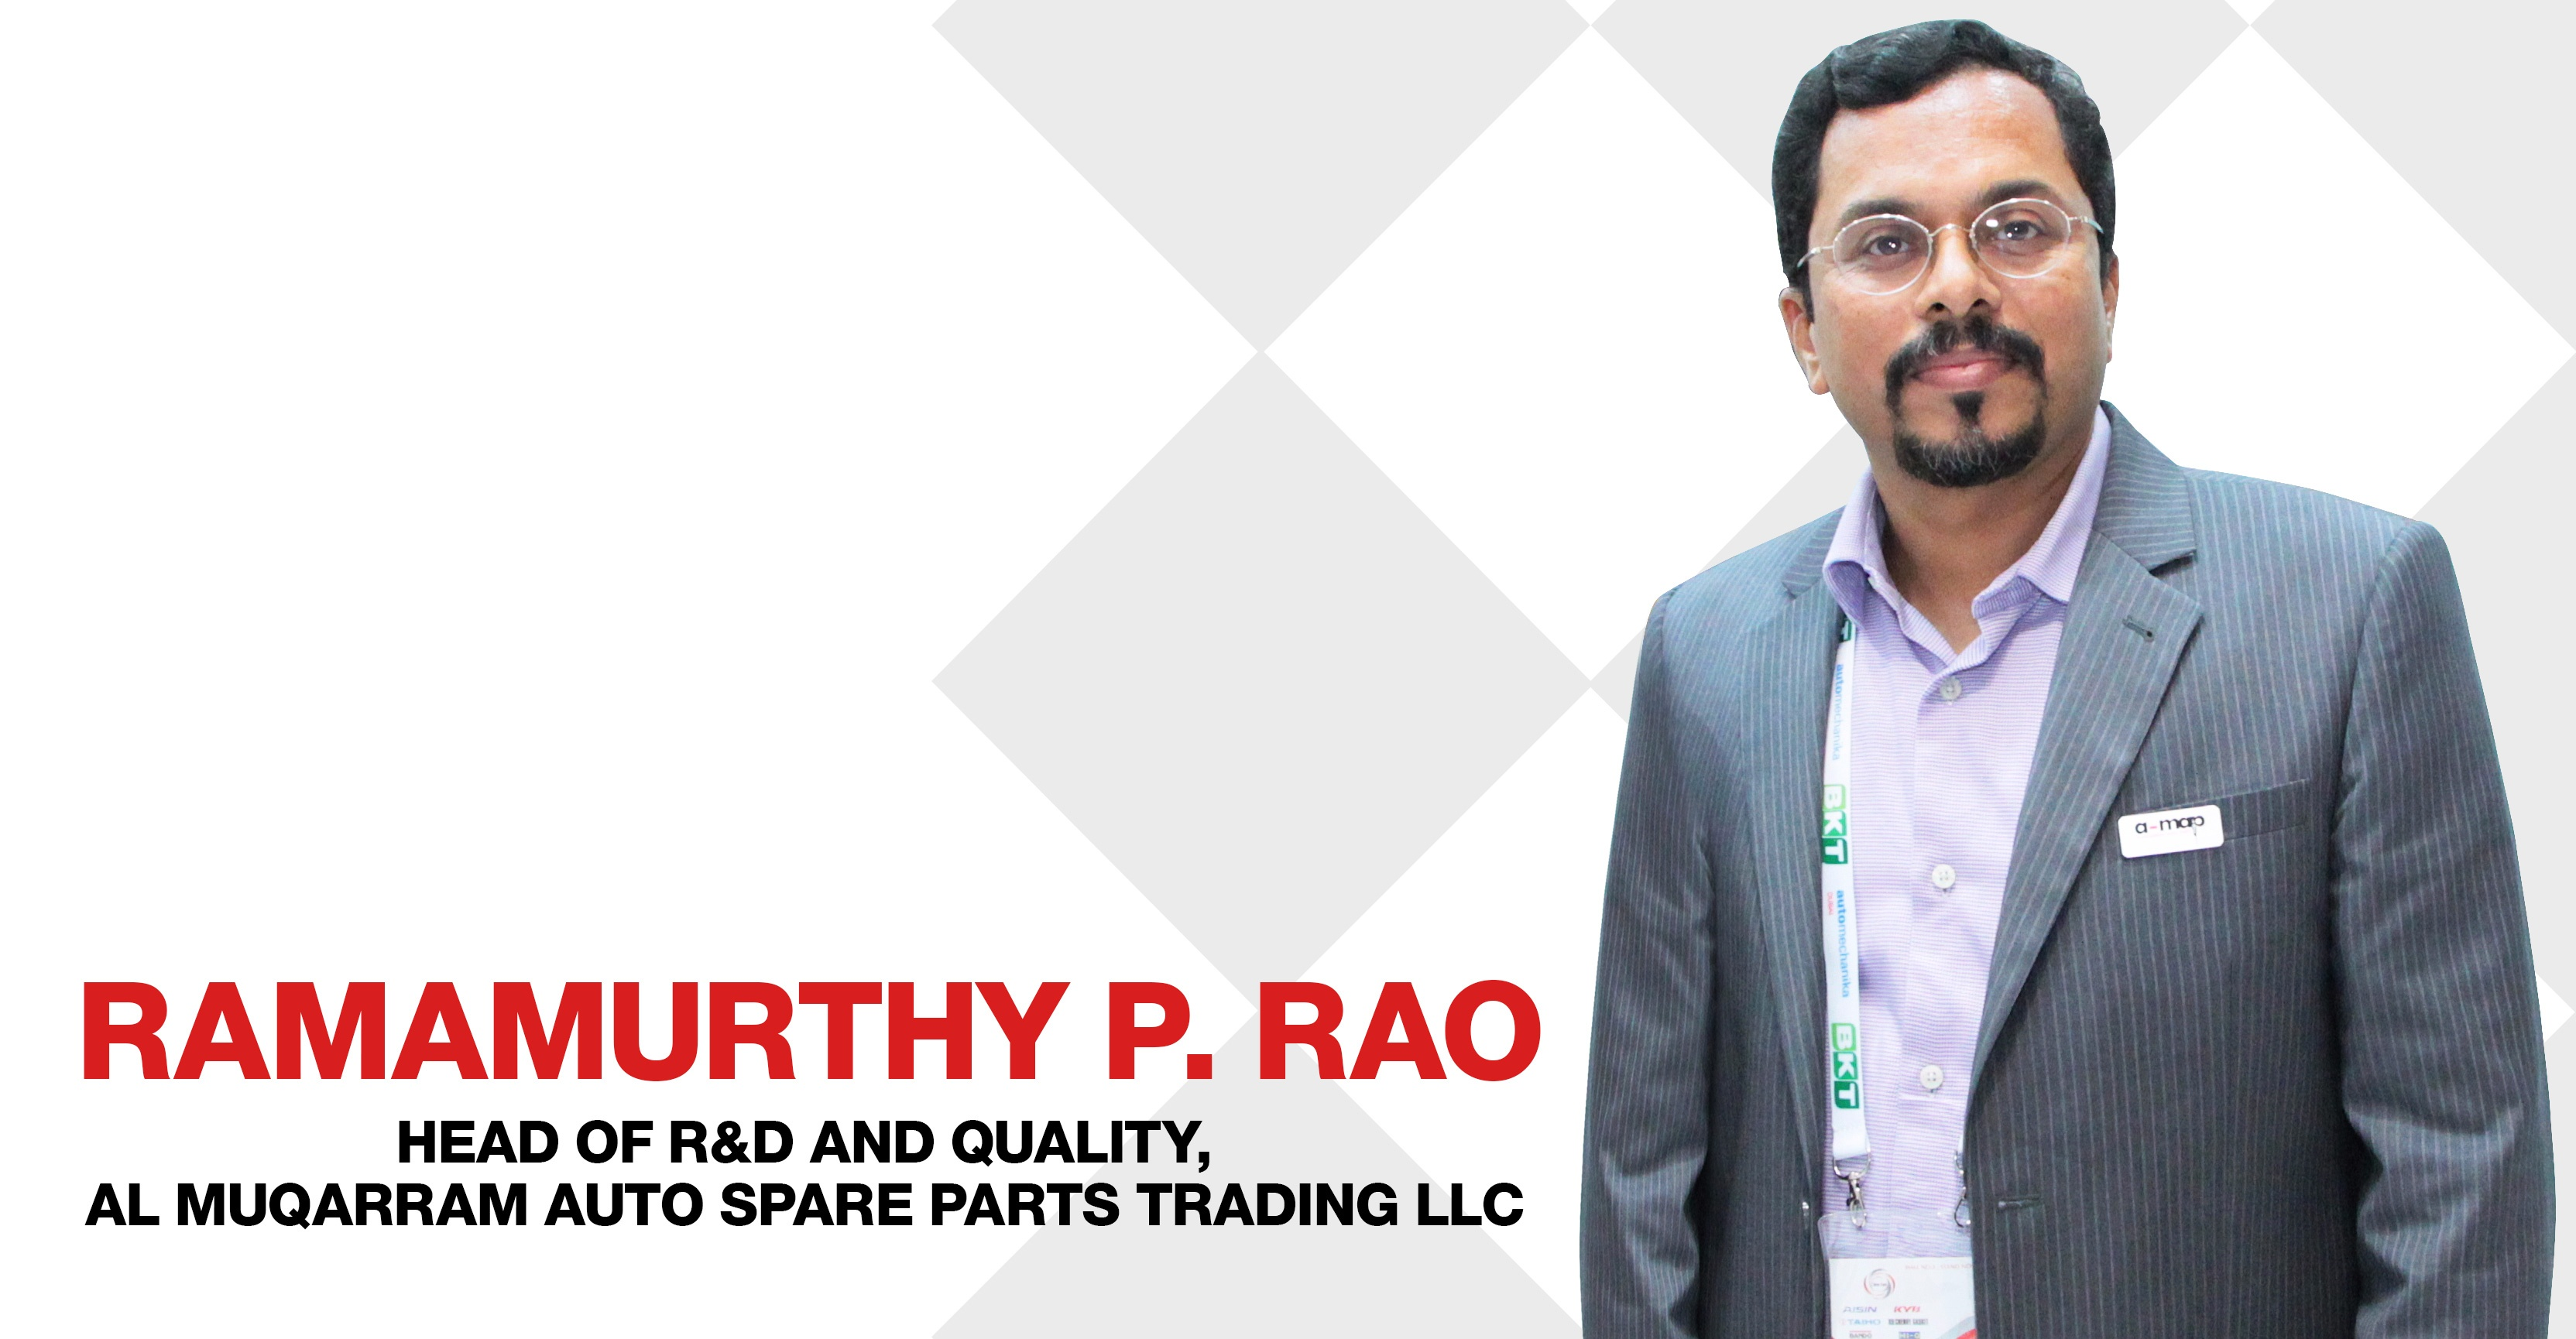 Interview with Ramamurthy P. Rao, Head of R&D and Quality, Al Muqarram Auto Spare Parts Trading LLC